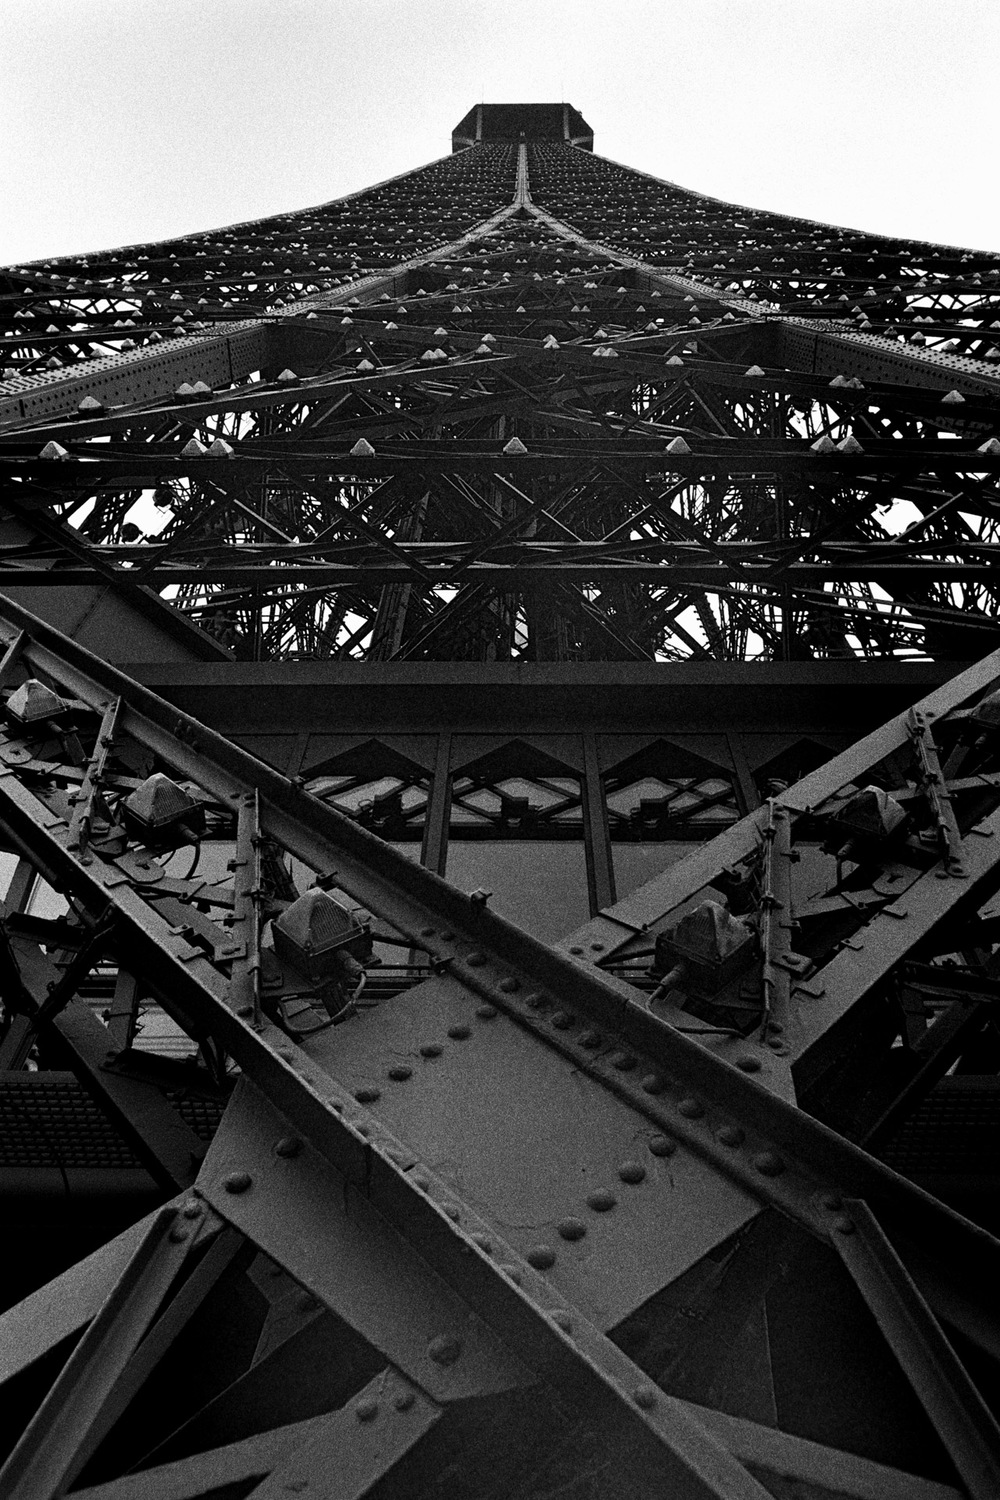 Paris (6) Eiffel Tower Detail.jpg